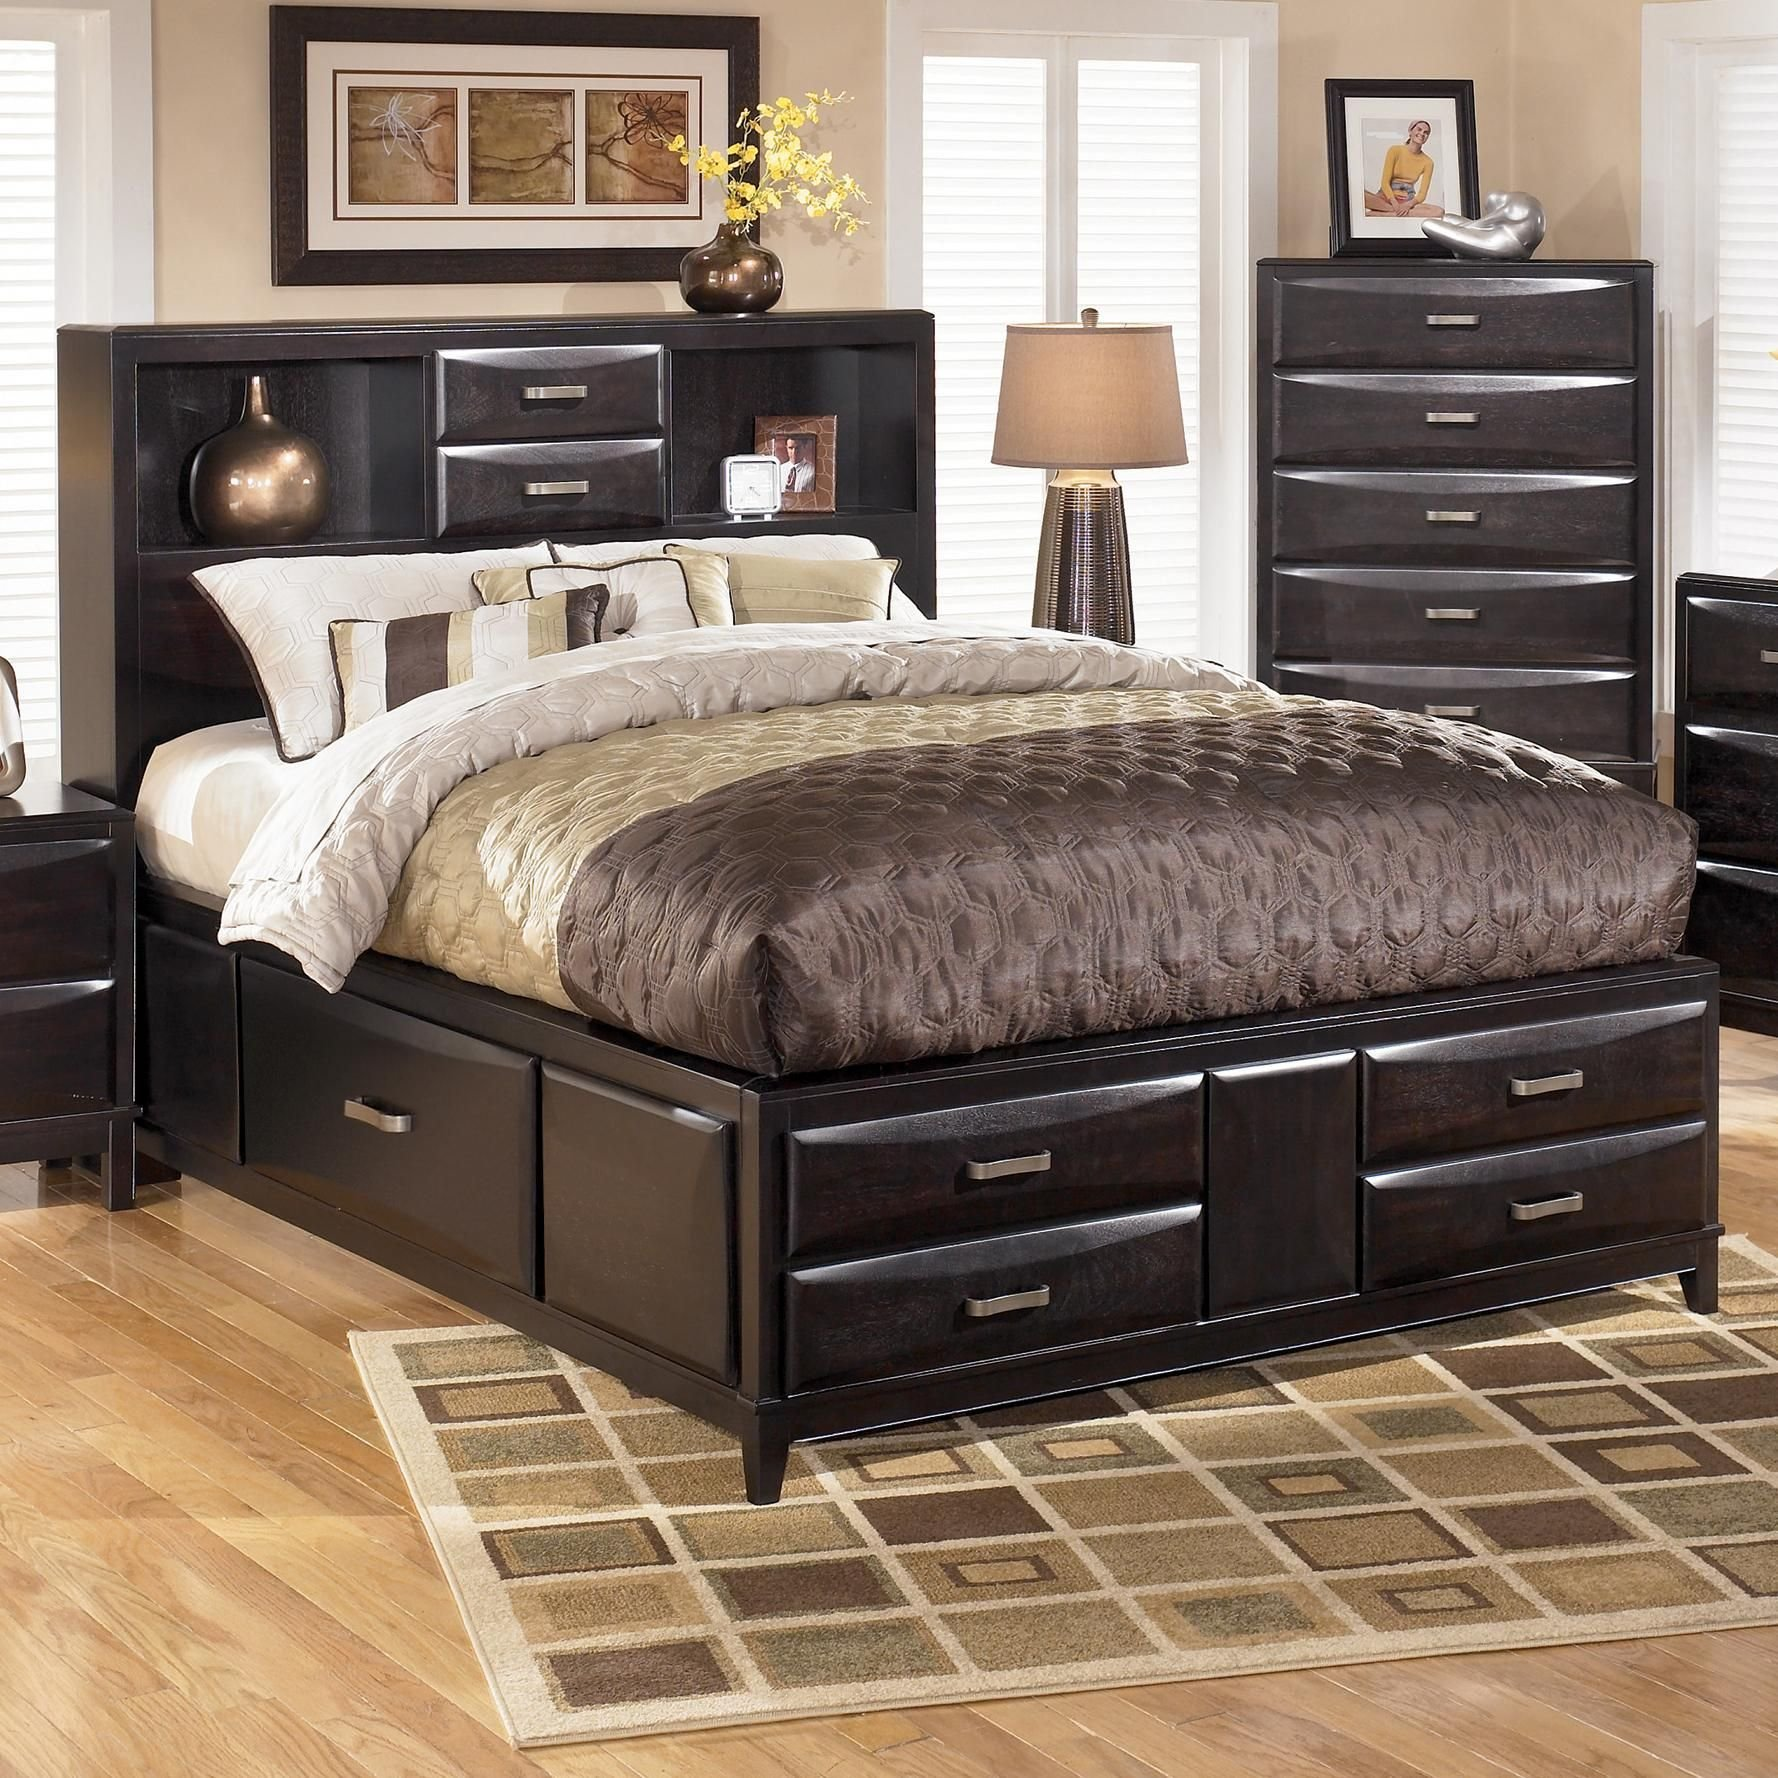 Best Kira Queen Storage Bed By Ashley Furniture L Fish With Pictures